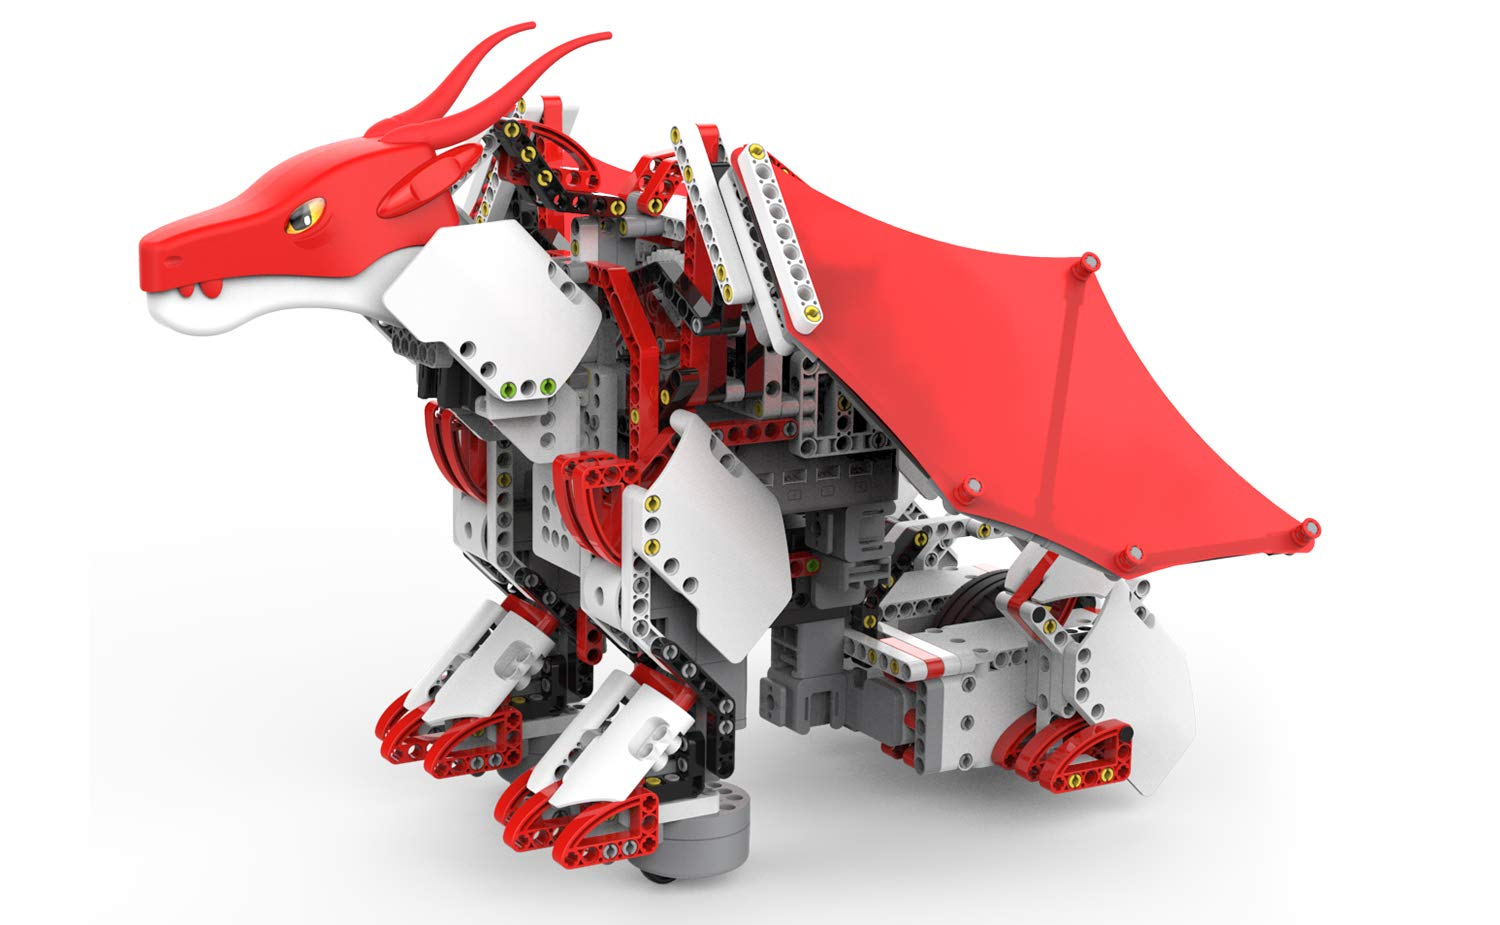 UBTECH JIMU Robot Mythical Series: Firebot Kit/ App-Enabled Building & Coding STEM Robot Kit (606 Pcs)